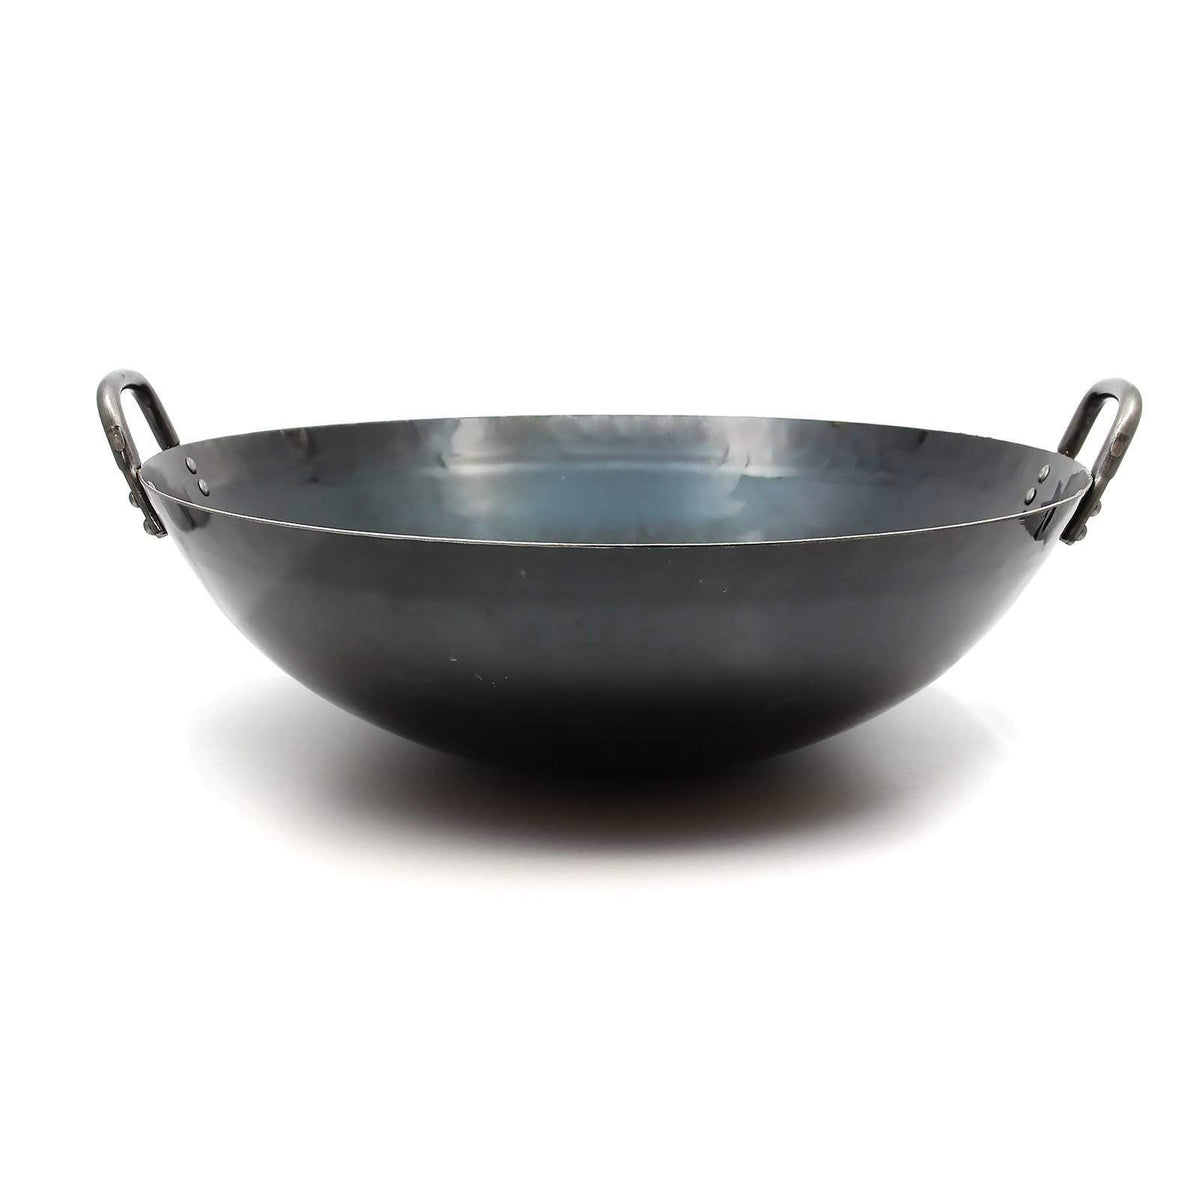 Yamada Hammered Iron Double-Handle Deep Wok (1.2mm Thickness) Hammered Iron Woks